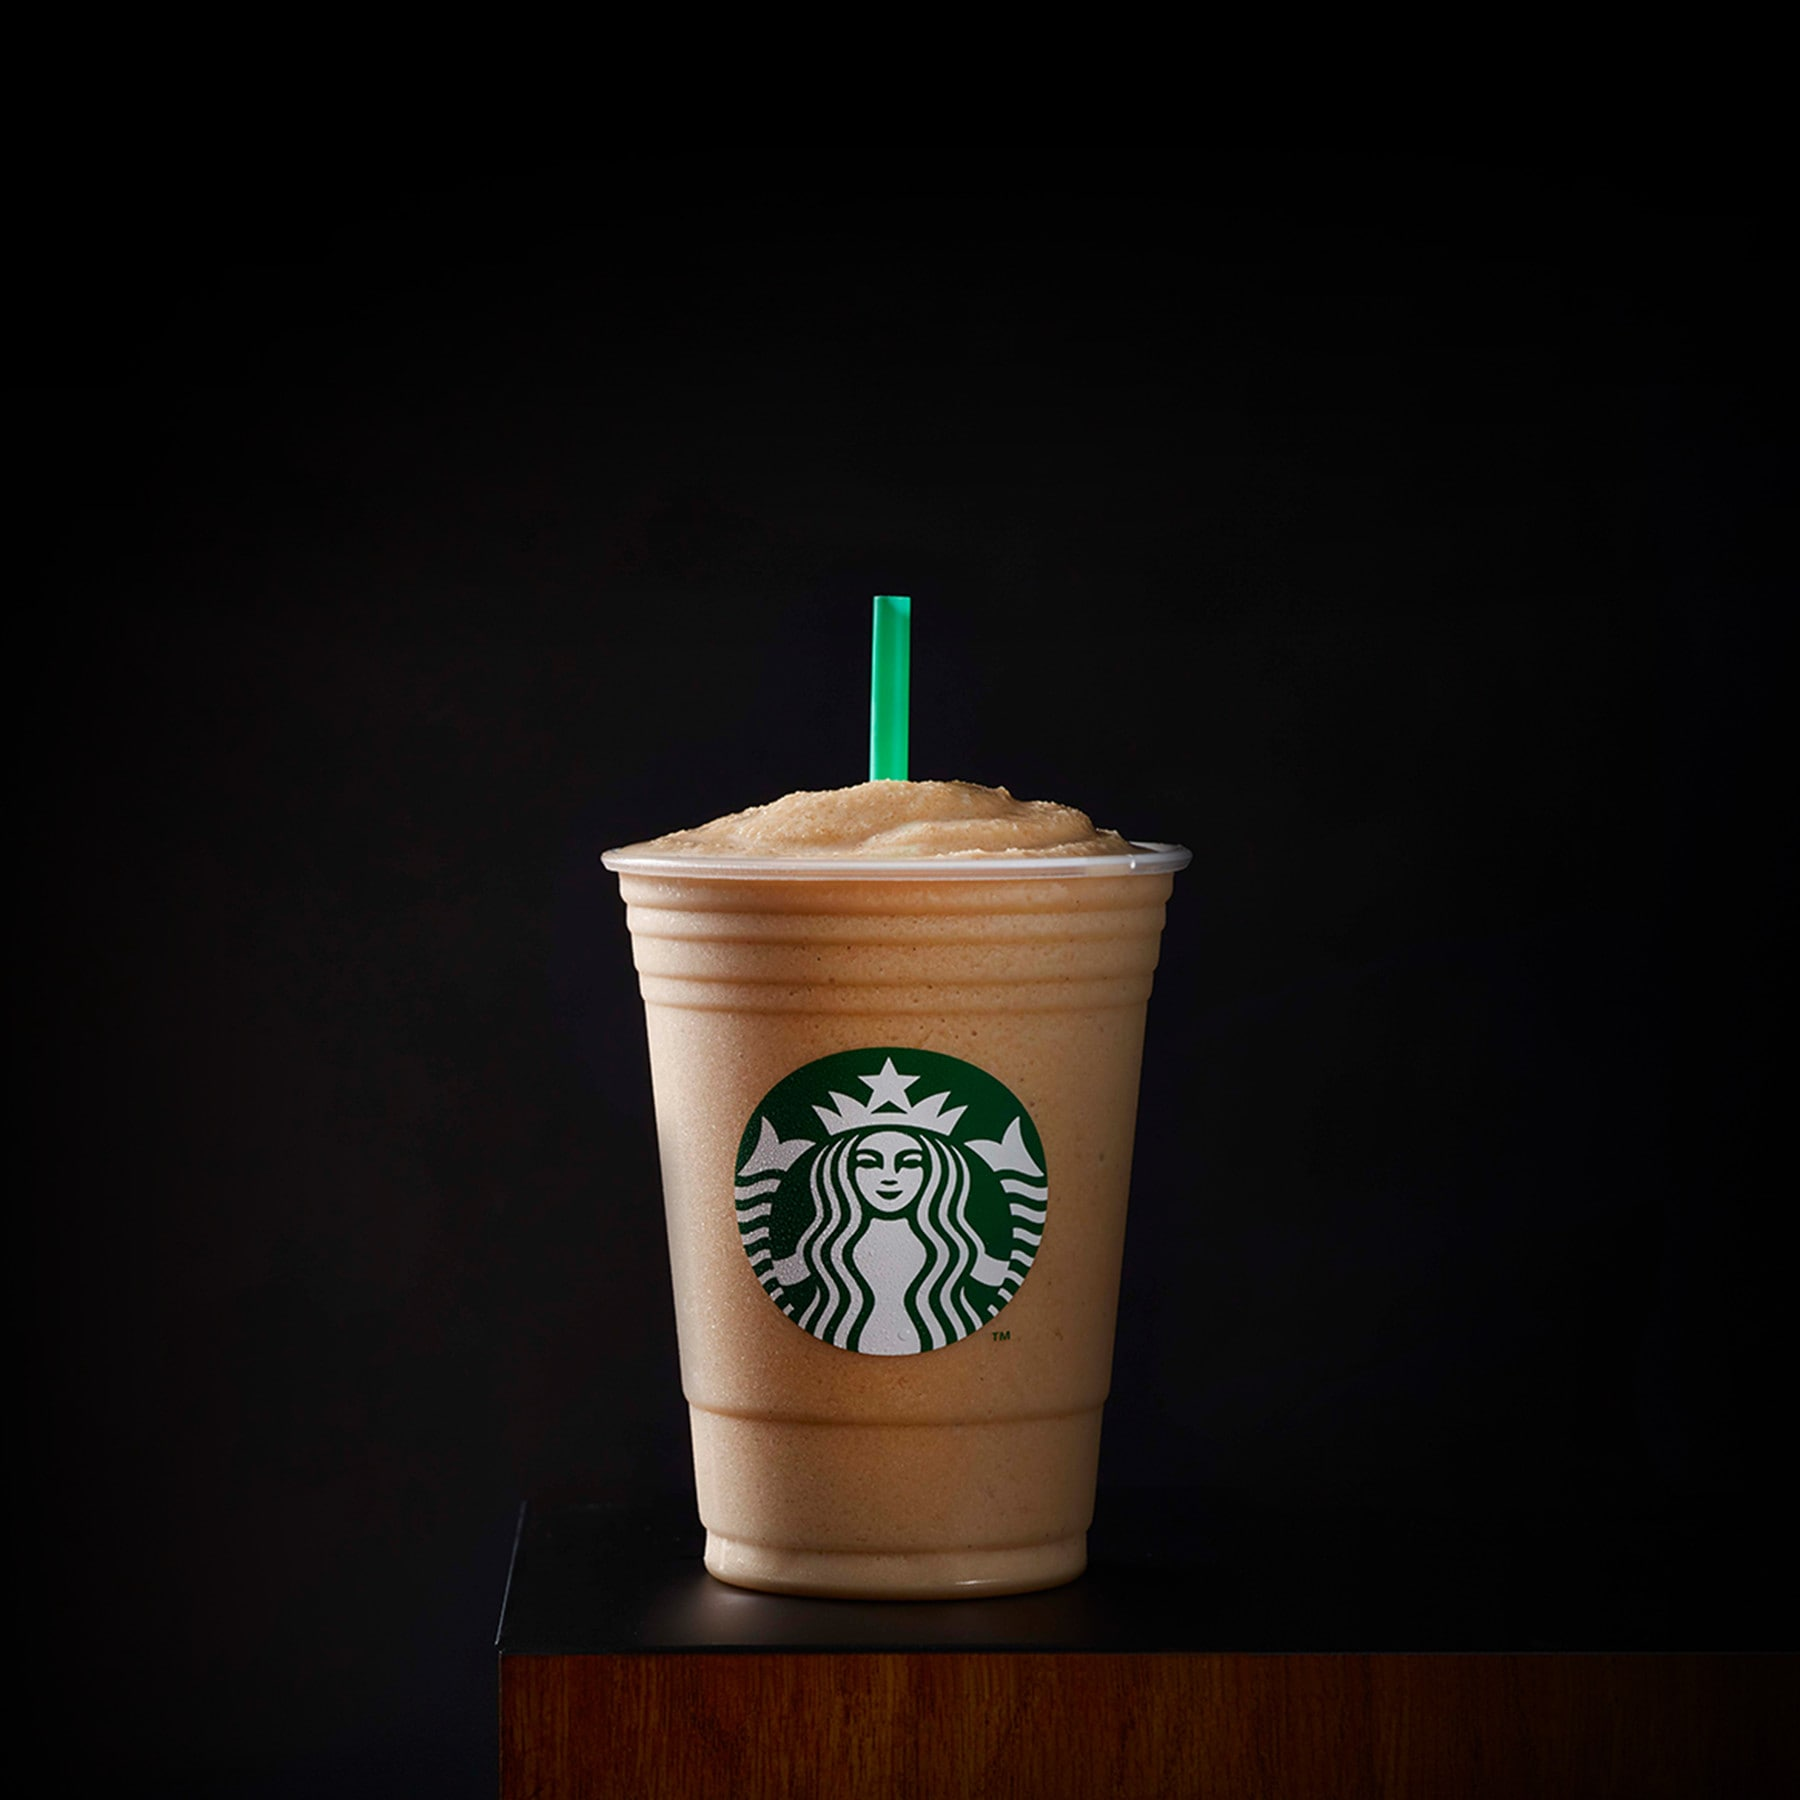 Caff 232 Vanilla Light Frappuccino 174 Blended Coffee